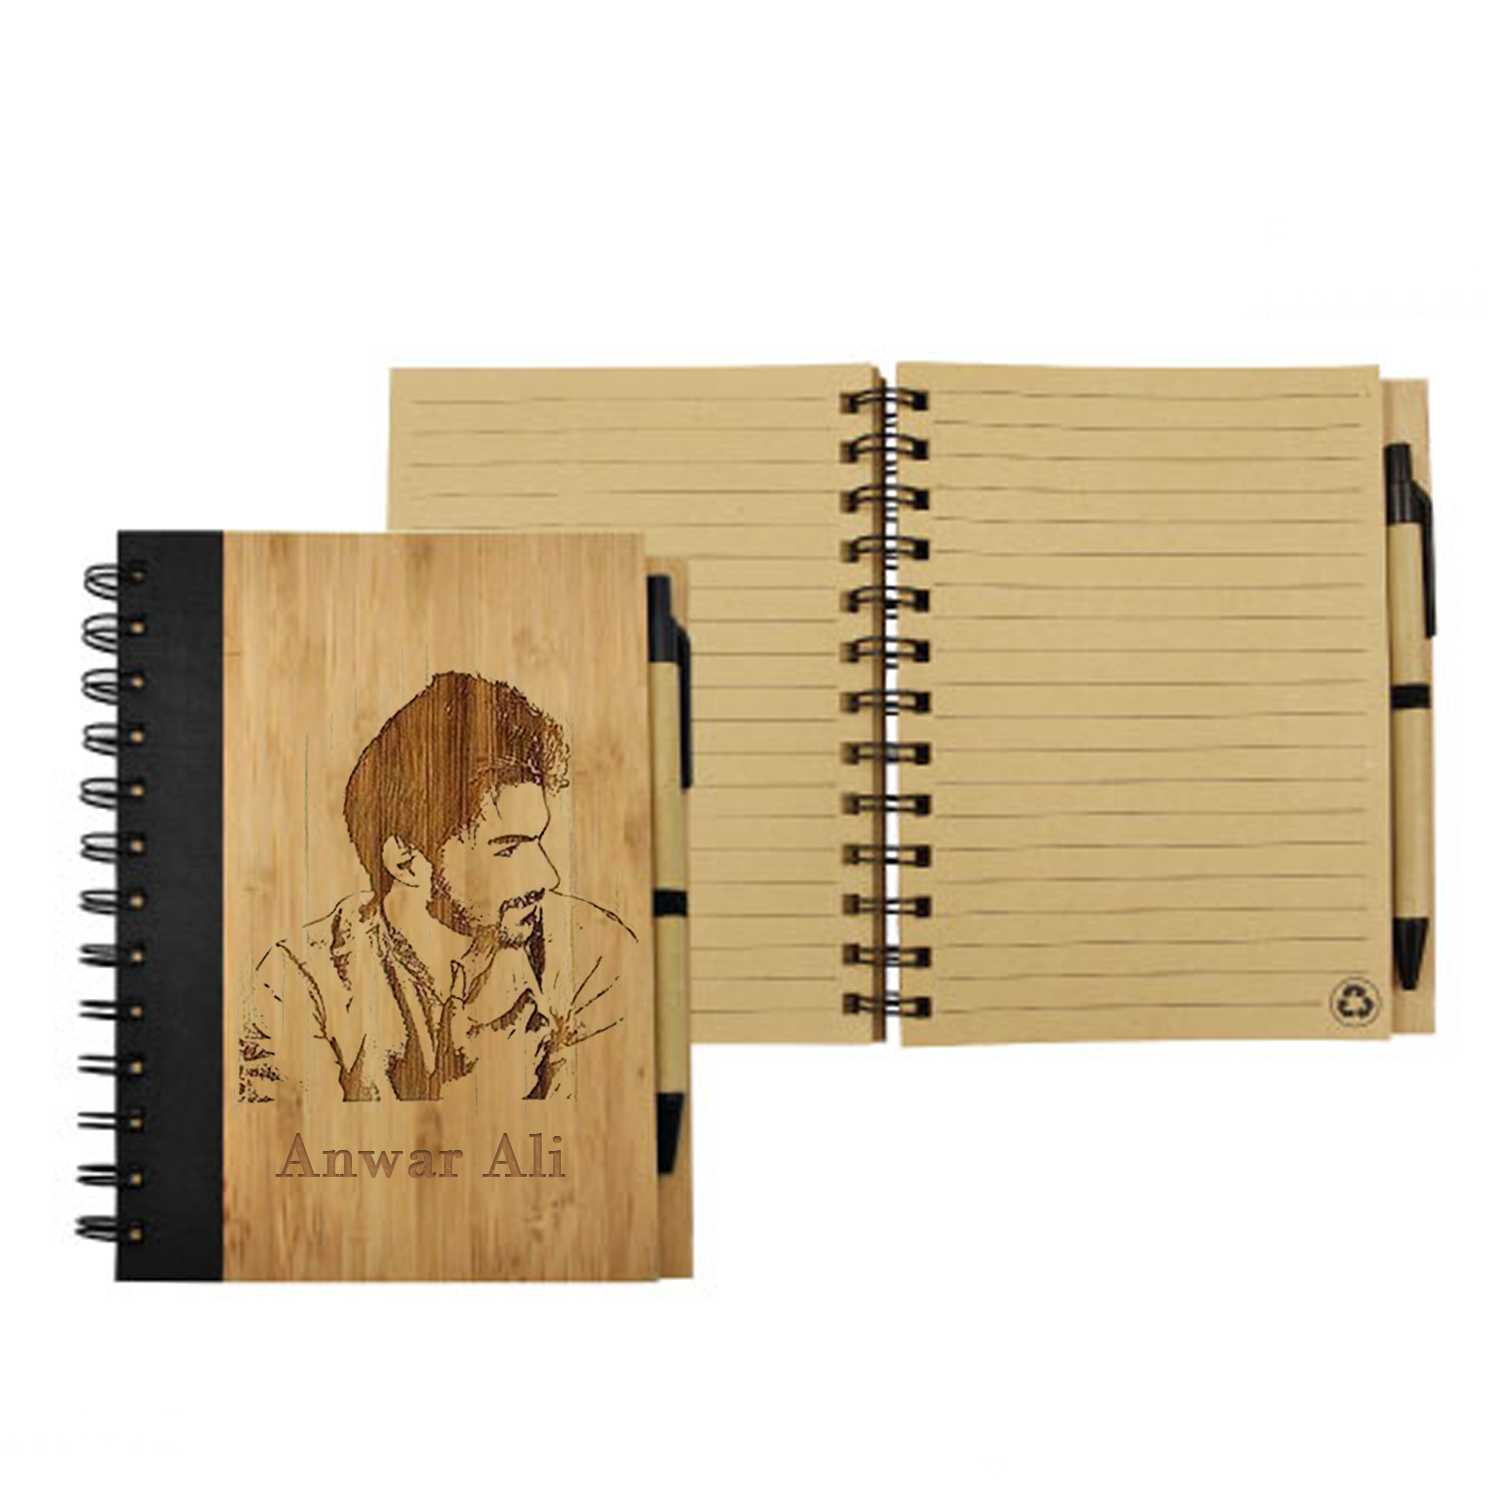 Photo Engraved Bamboo Notebook With Pen: Personalised Gifts